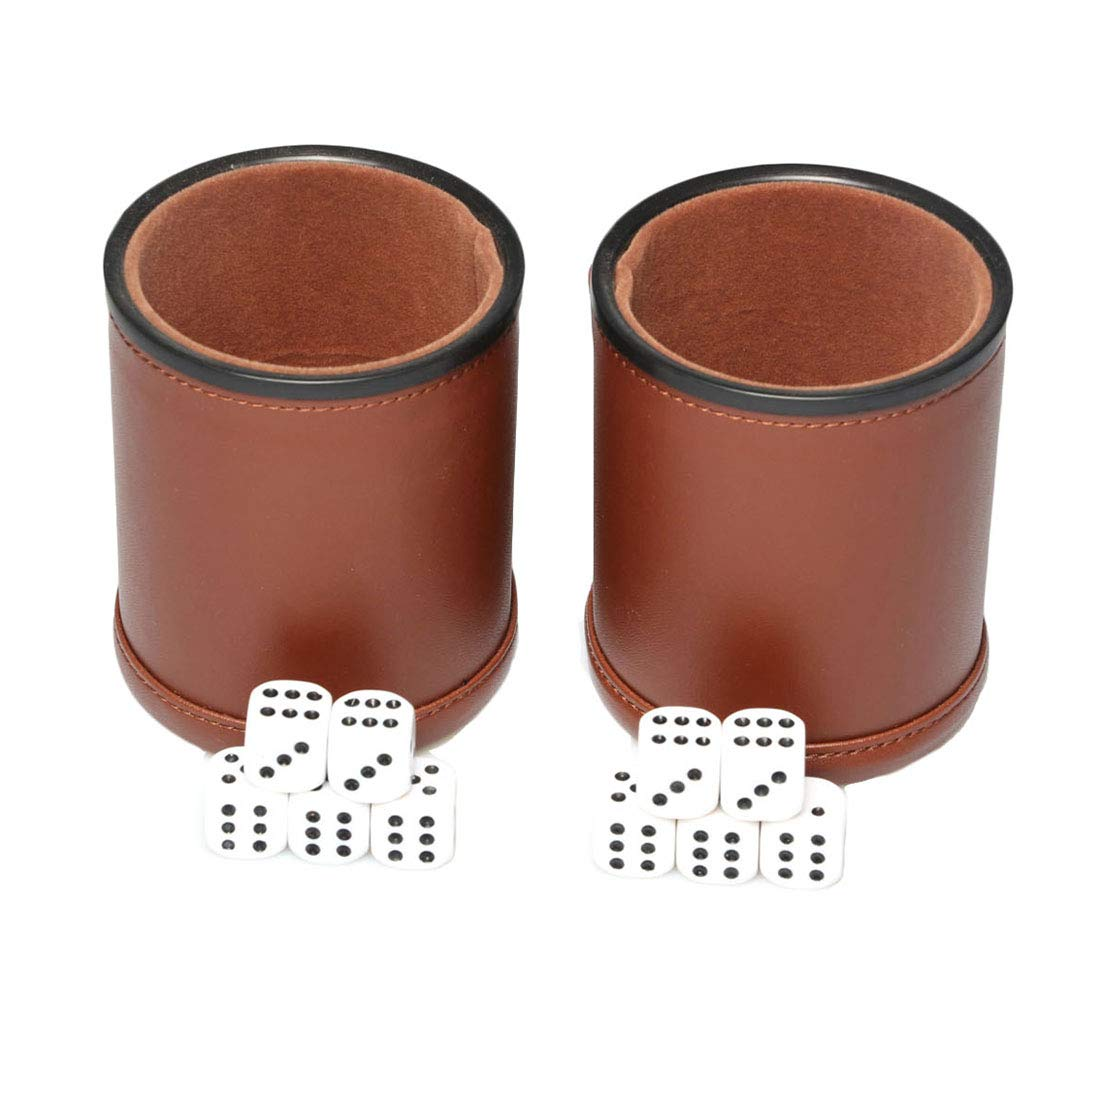 Leather Dice Cup Set Felt Lining Quiet Shaker with 5 Dot Dices for Farkle Yahtzee Games,2 Pack (Brown) by RERIVER